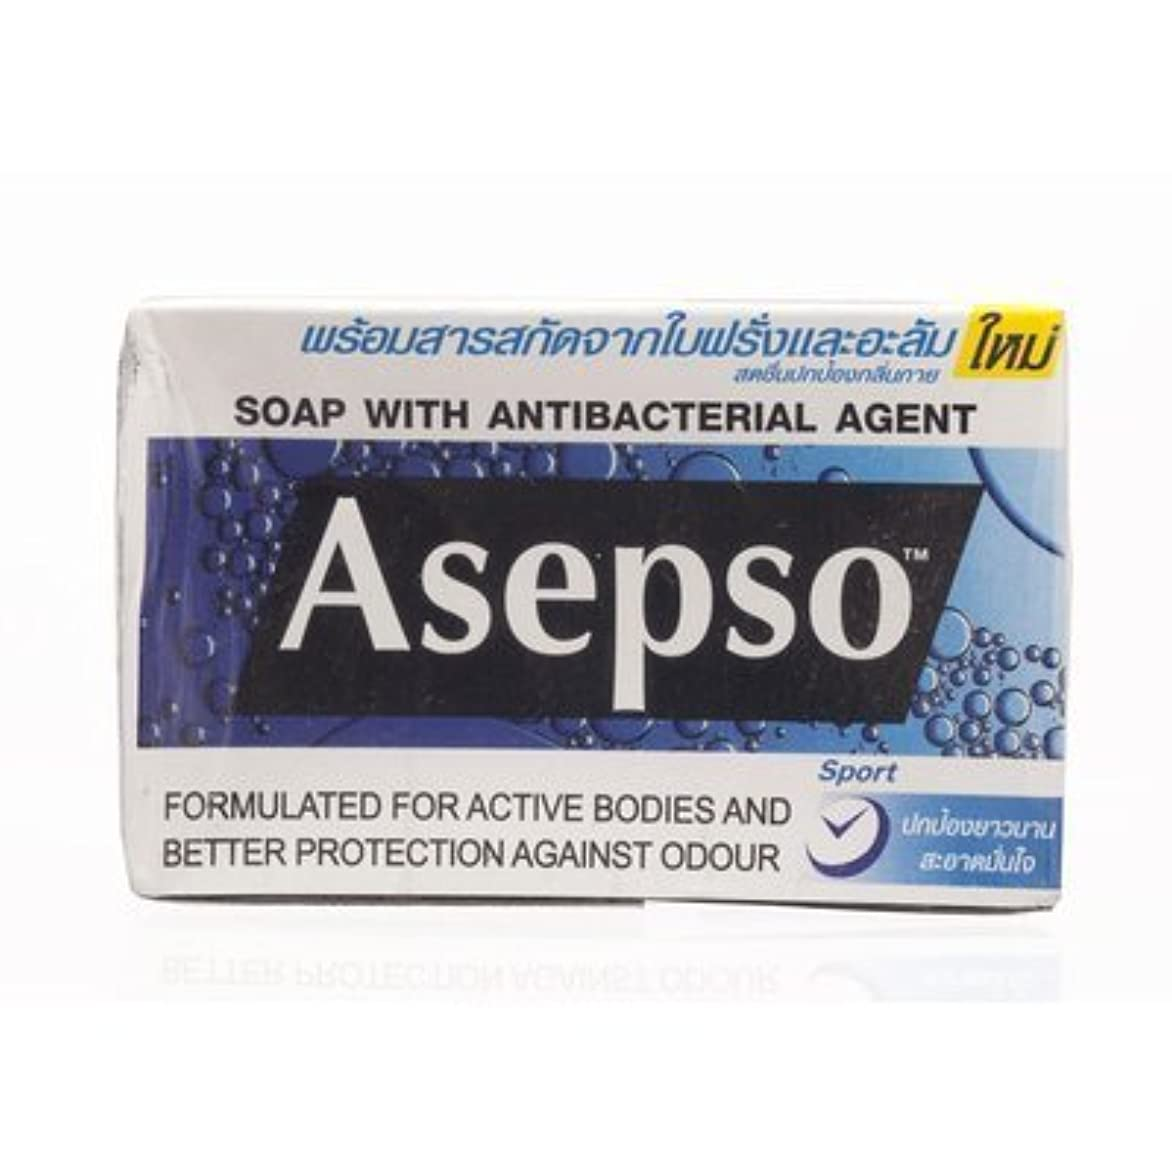 Asepso Bar Soap Sport 80g. (Pack of 6) by Asepso [並行輸入品]